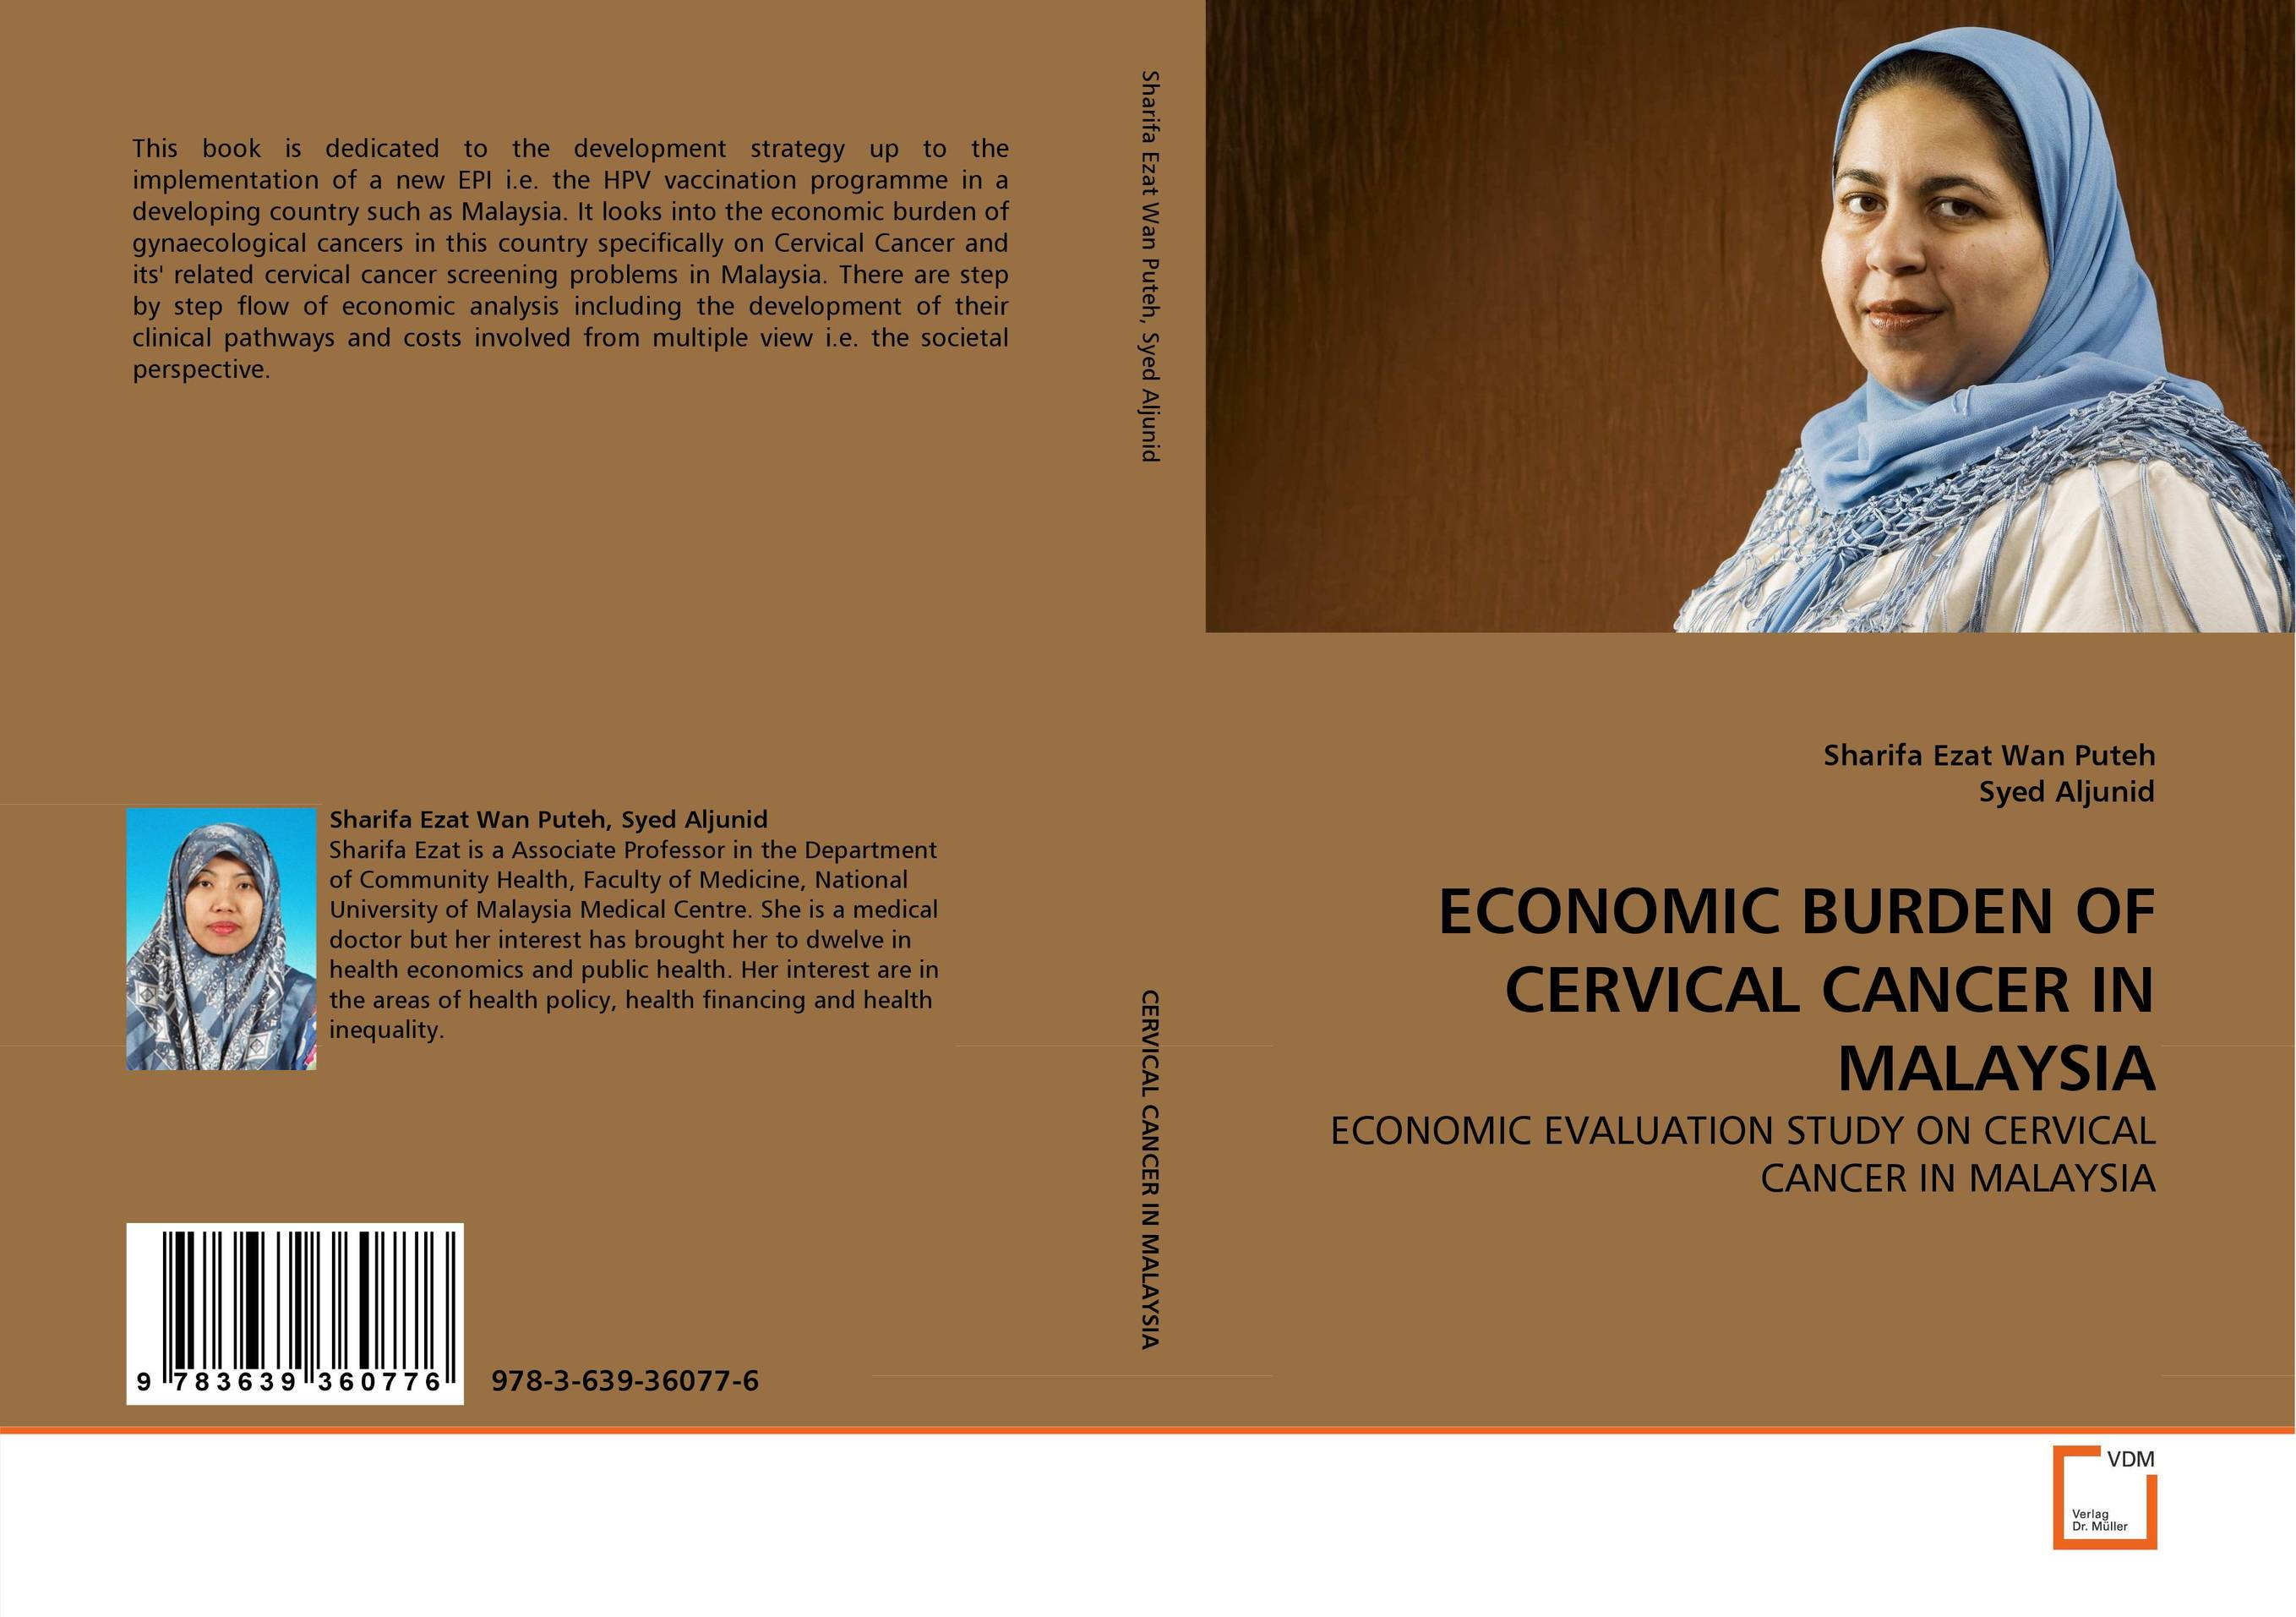 ECONOMIC BURDEN OF CERVICAL CANCER IN MALAYSIA late stage diagnosis of cervical cancer